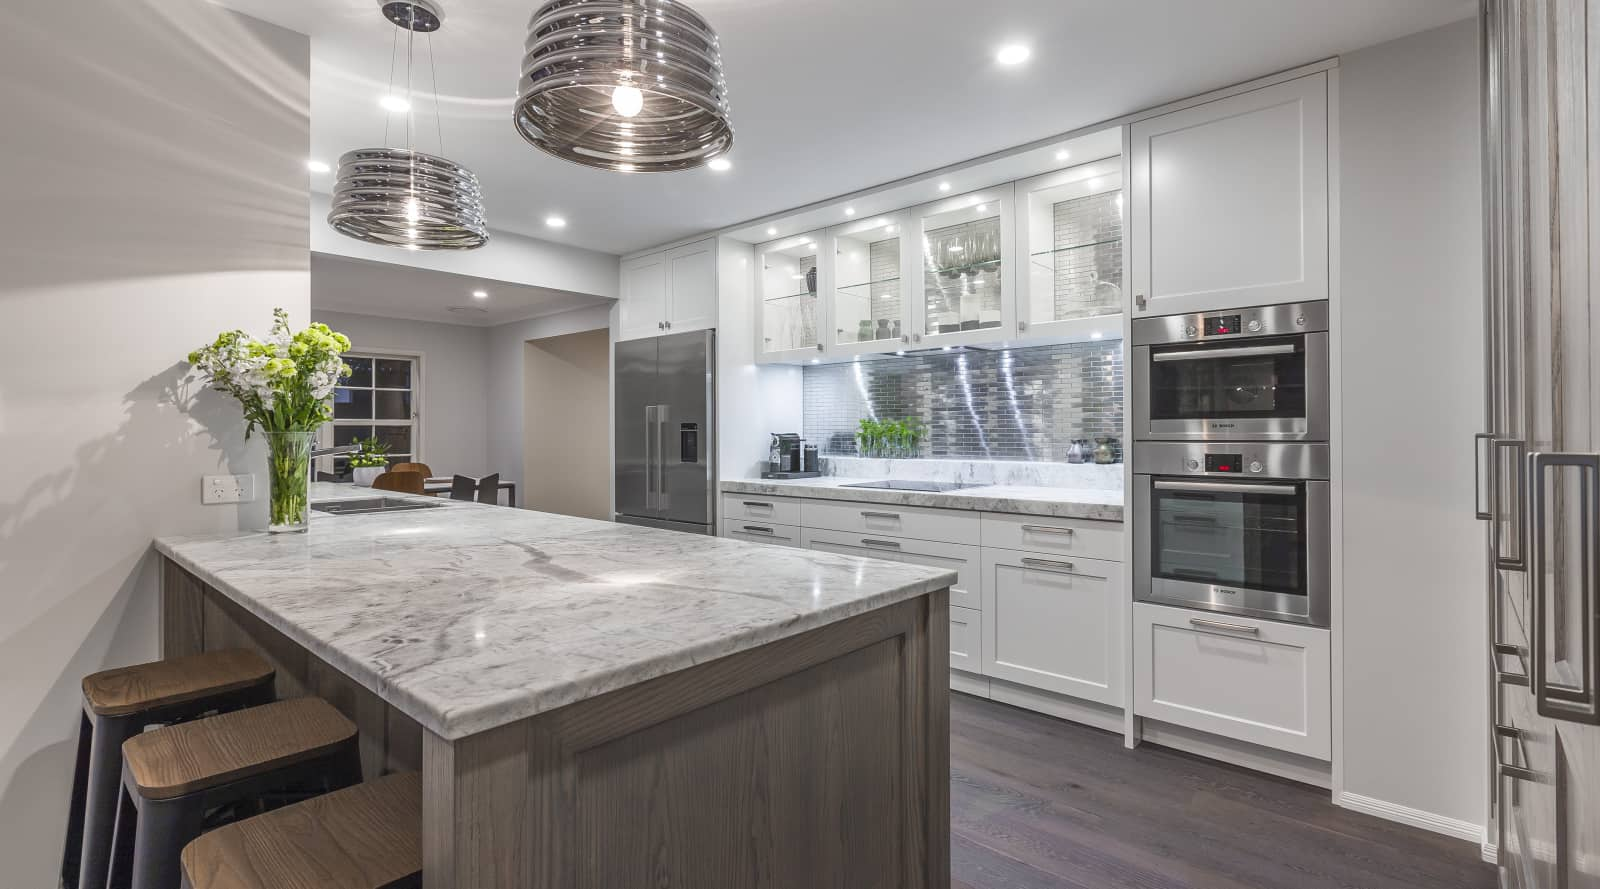 Eclectic kitchen with traditional doors and modern metal…